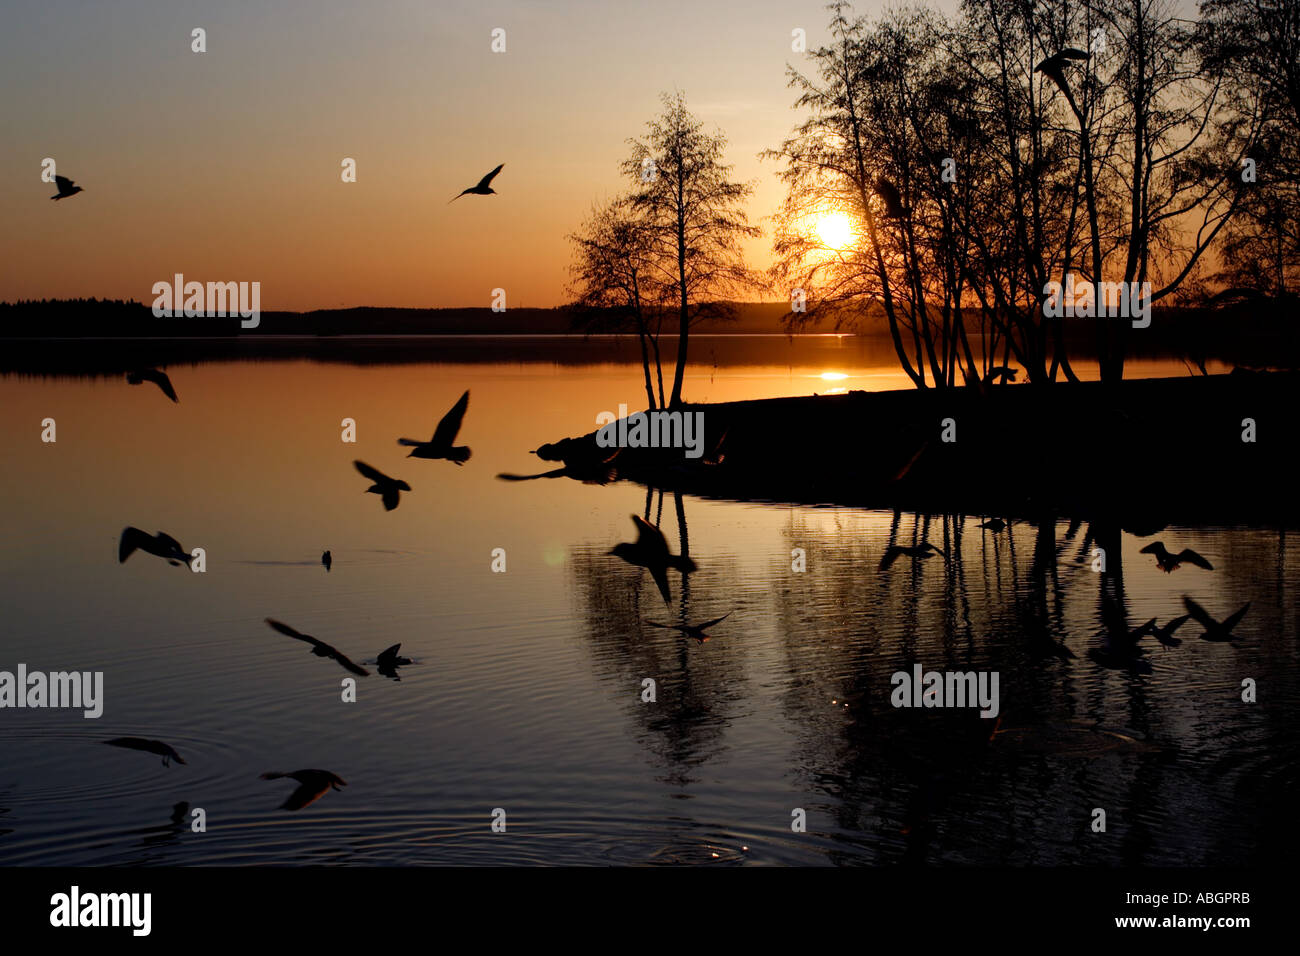 Birds and Sunset - Stock Image